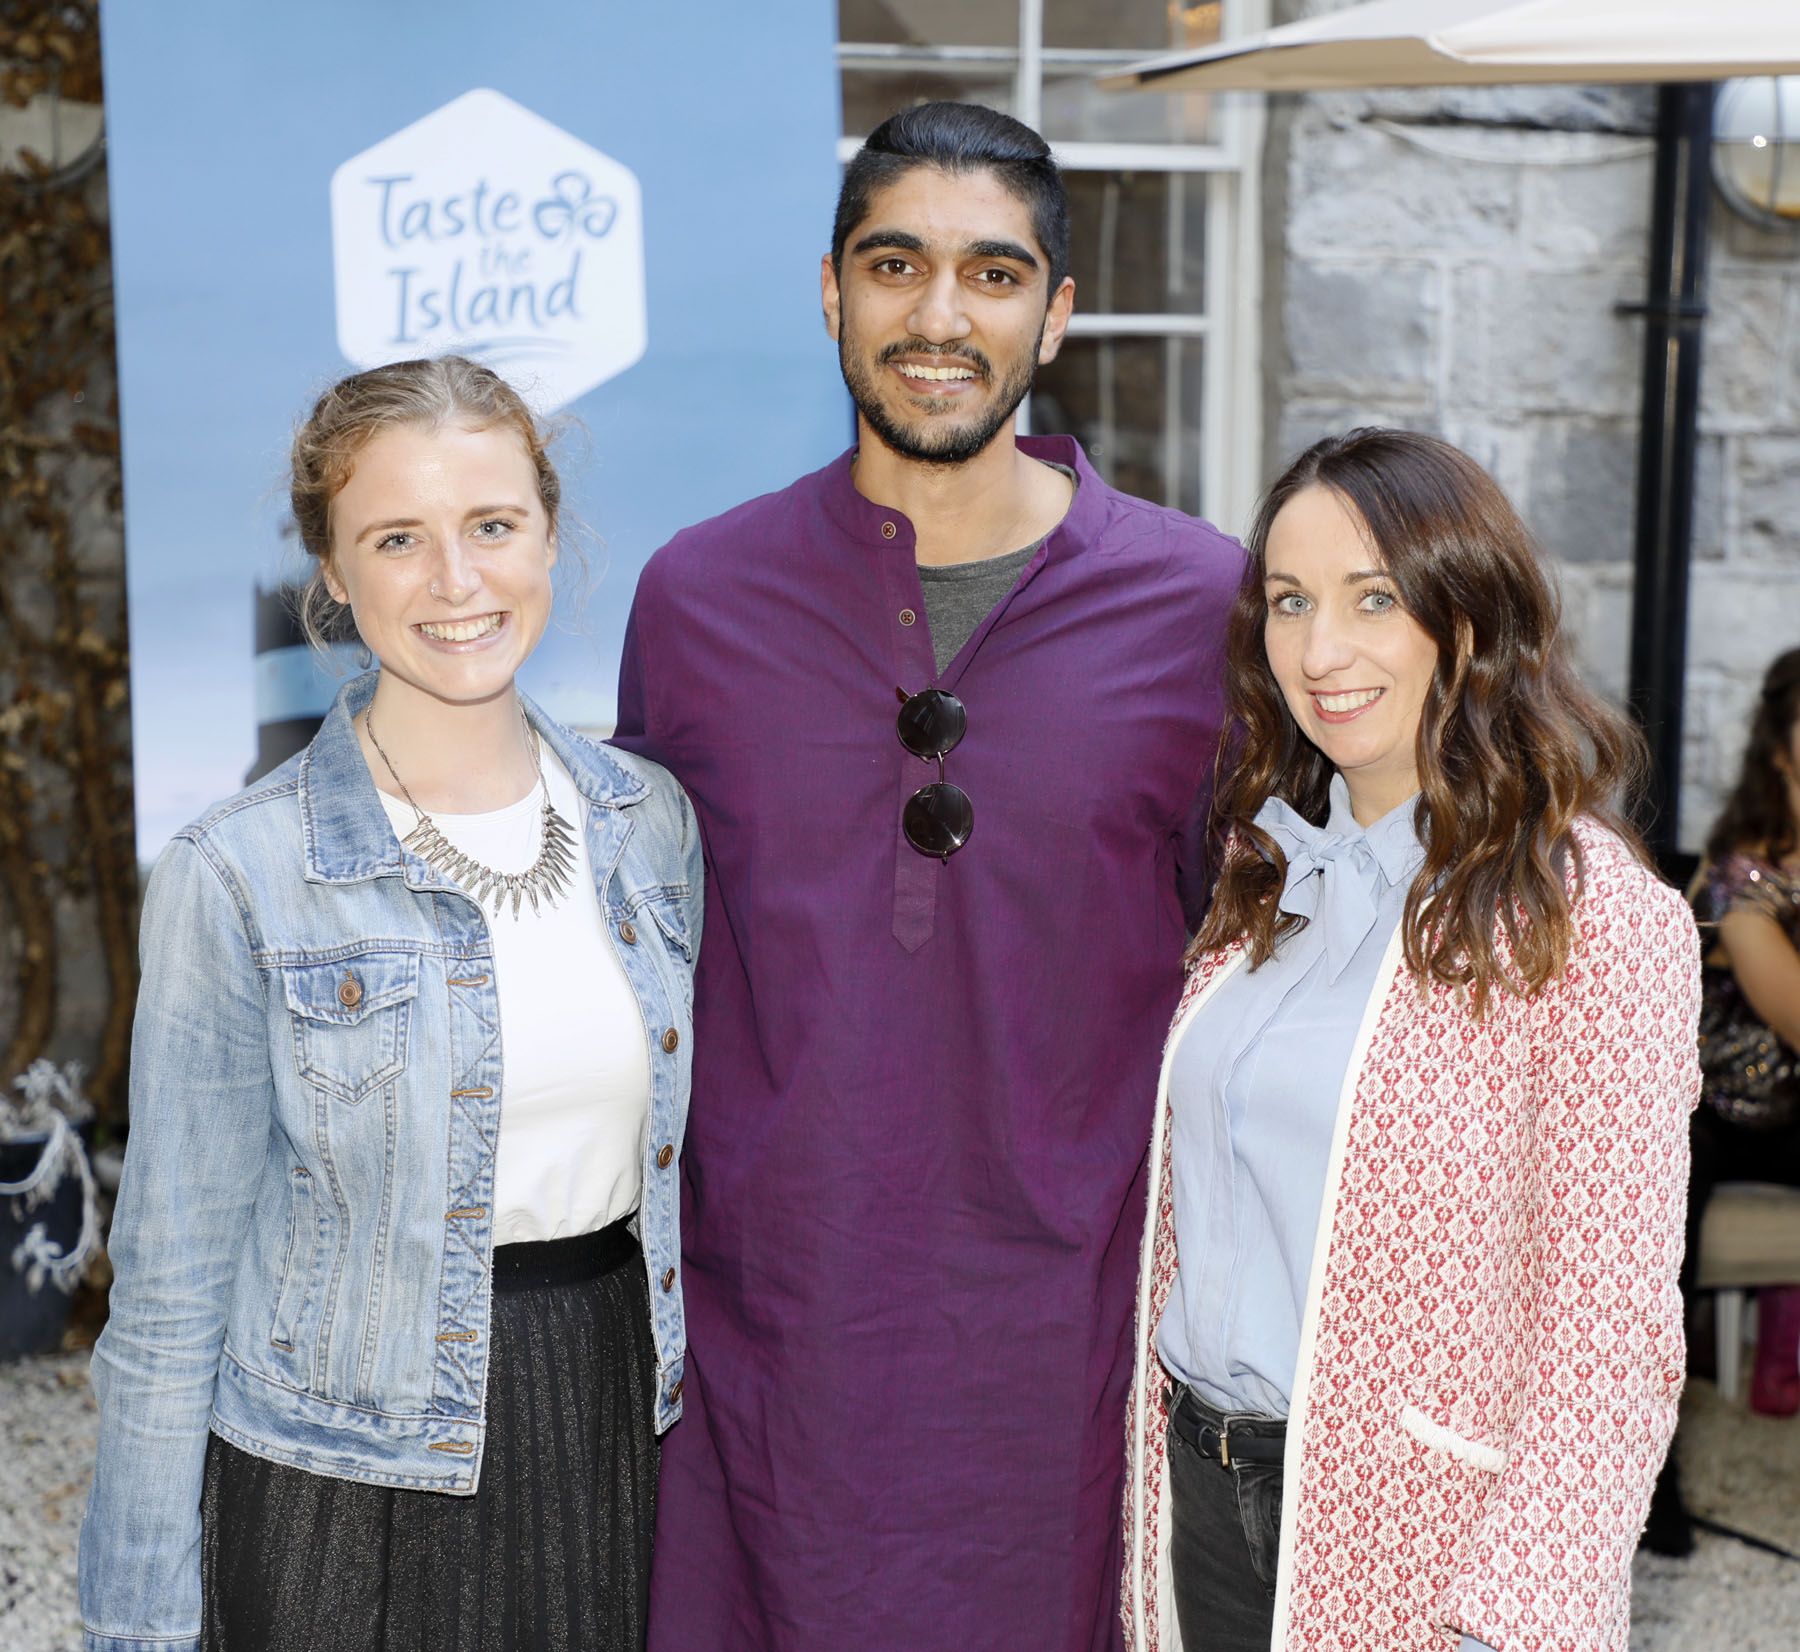 Fiona Cuniffe, Amar Jacob and Nessa Van Rooyan at the launch of Taste the Island, a 12 week celebration of Ireland's seasonal ingredients, adventurous tastes and bold experiences taking place this September, October and November. Photo: Kieran Harnett